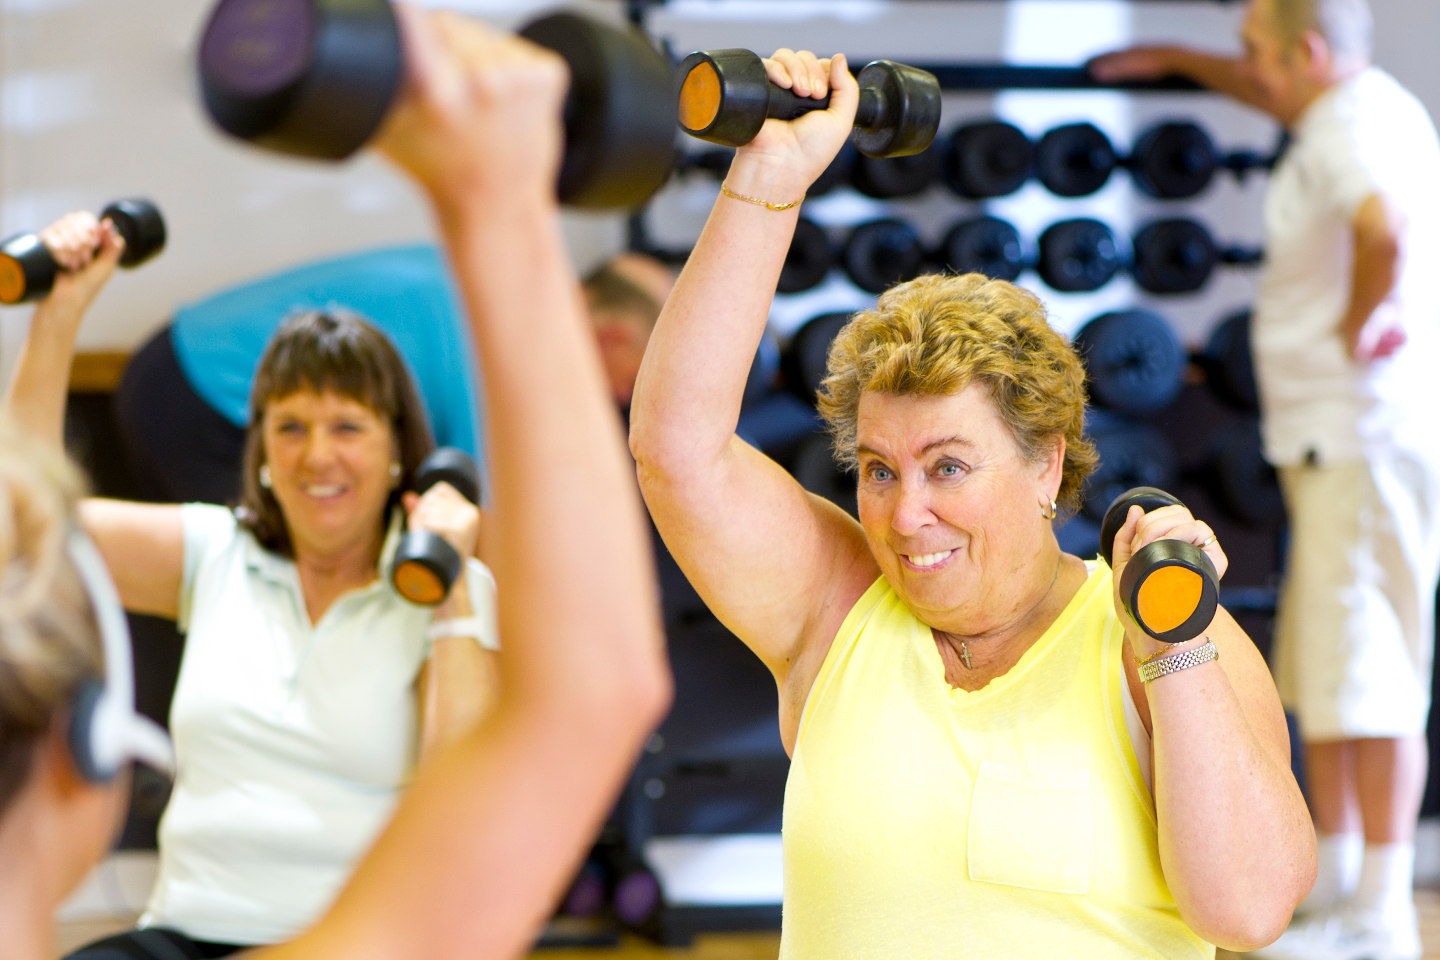 fun seniors workout. Two ladies doing shoulder press with dumbells.